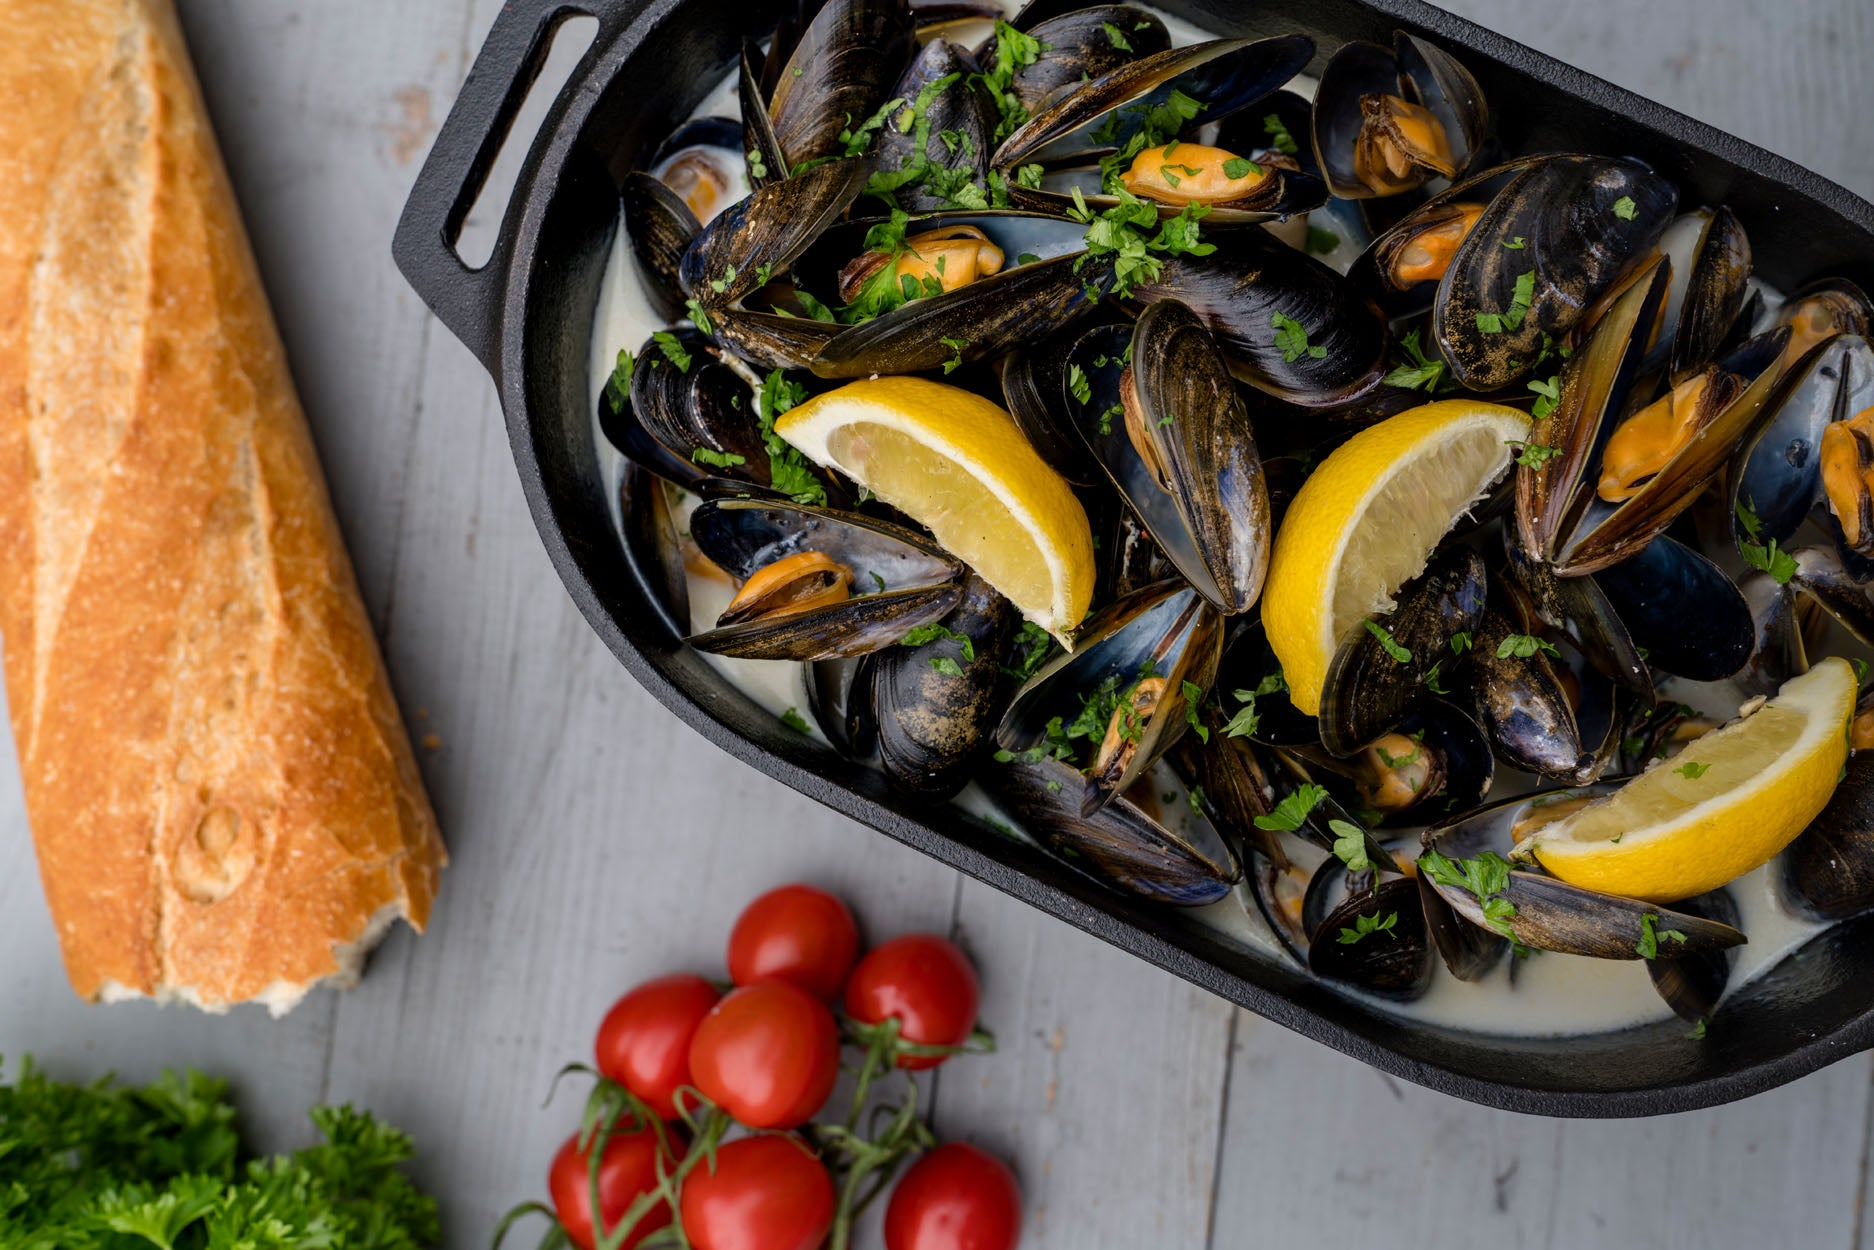 Steamed Mussels in White Wine Featured Image